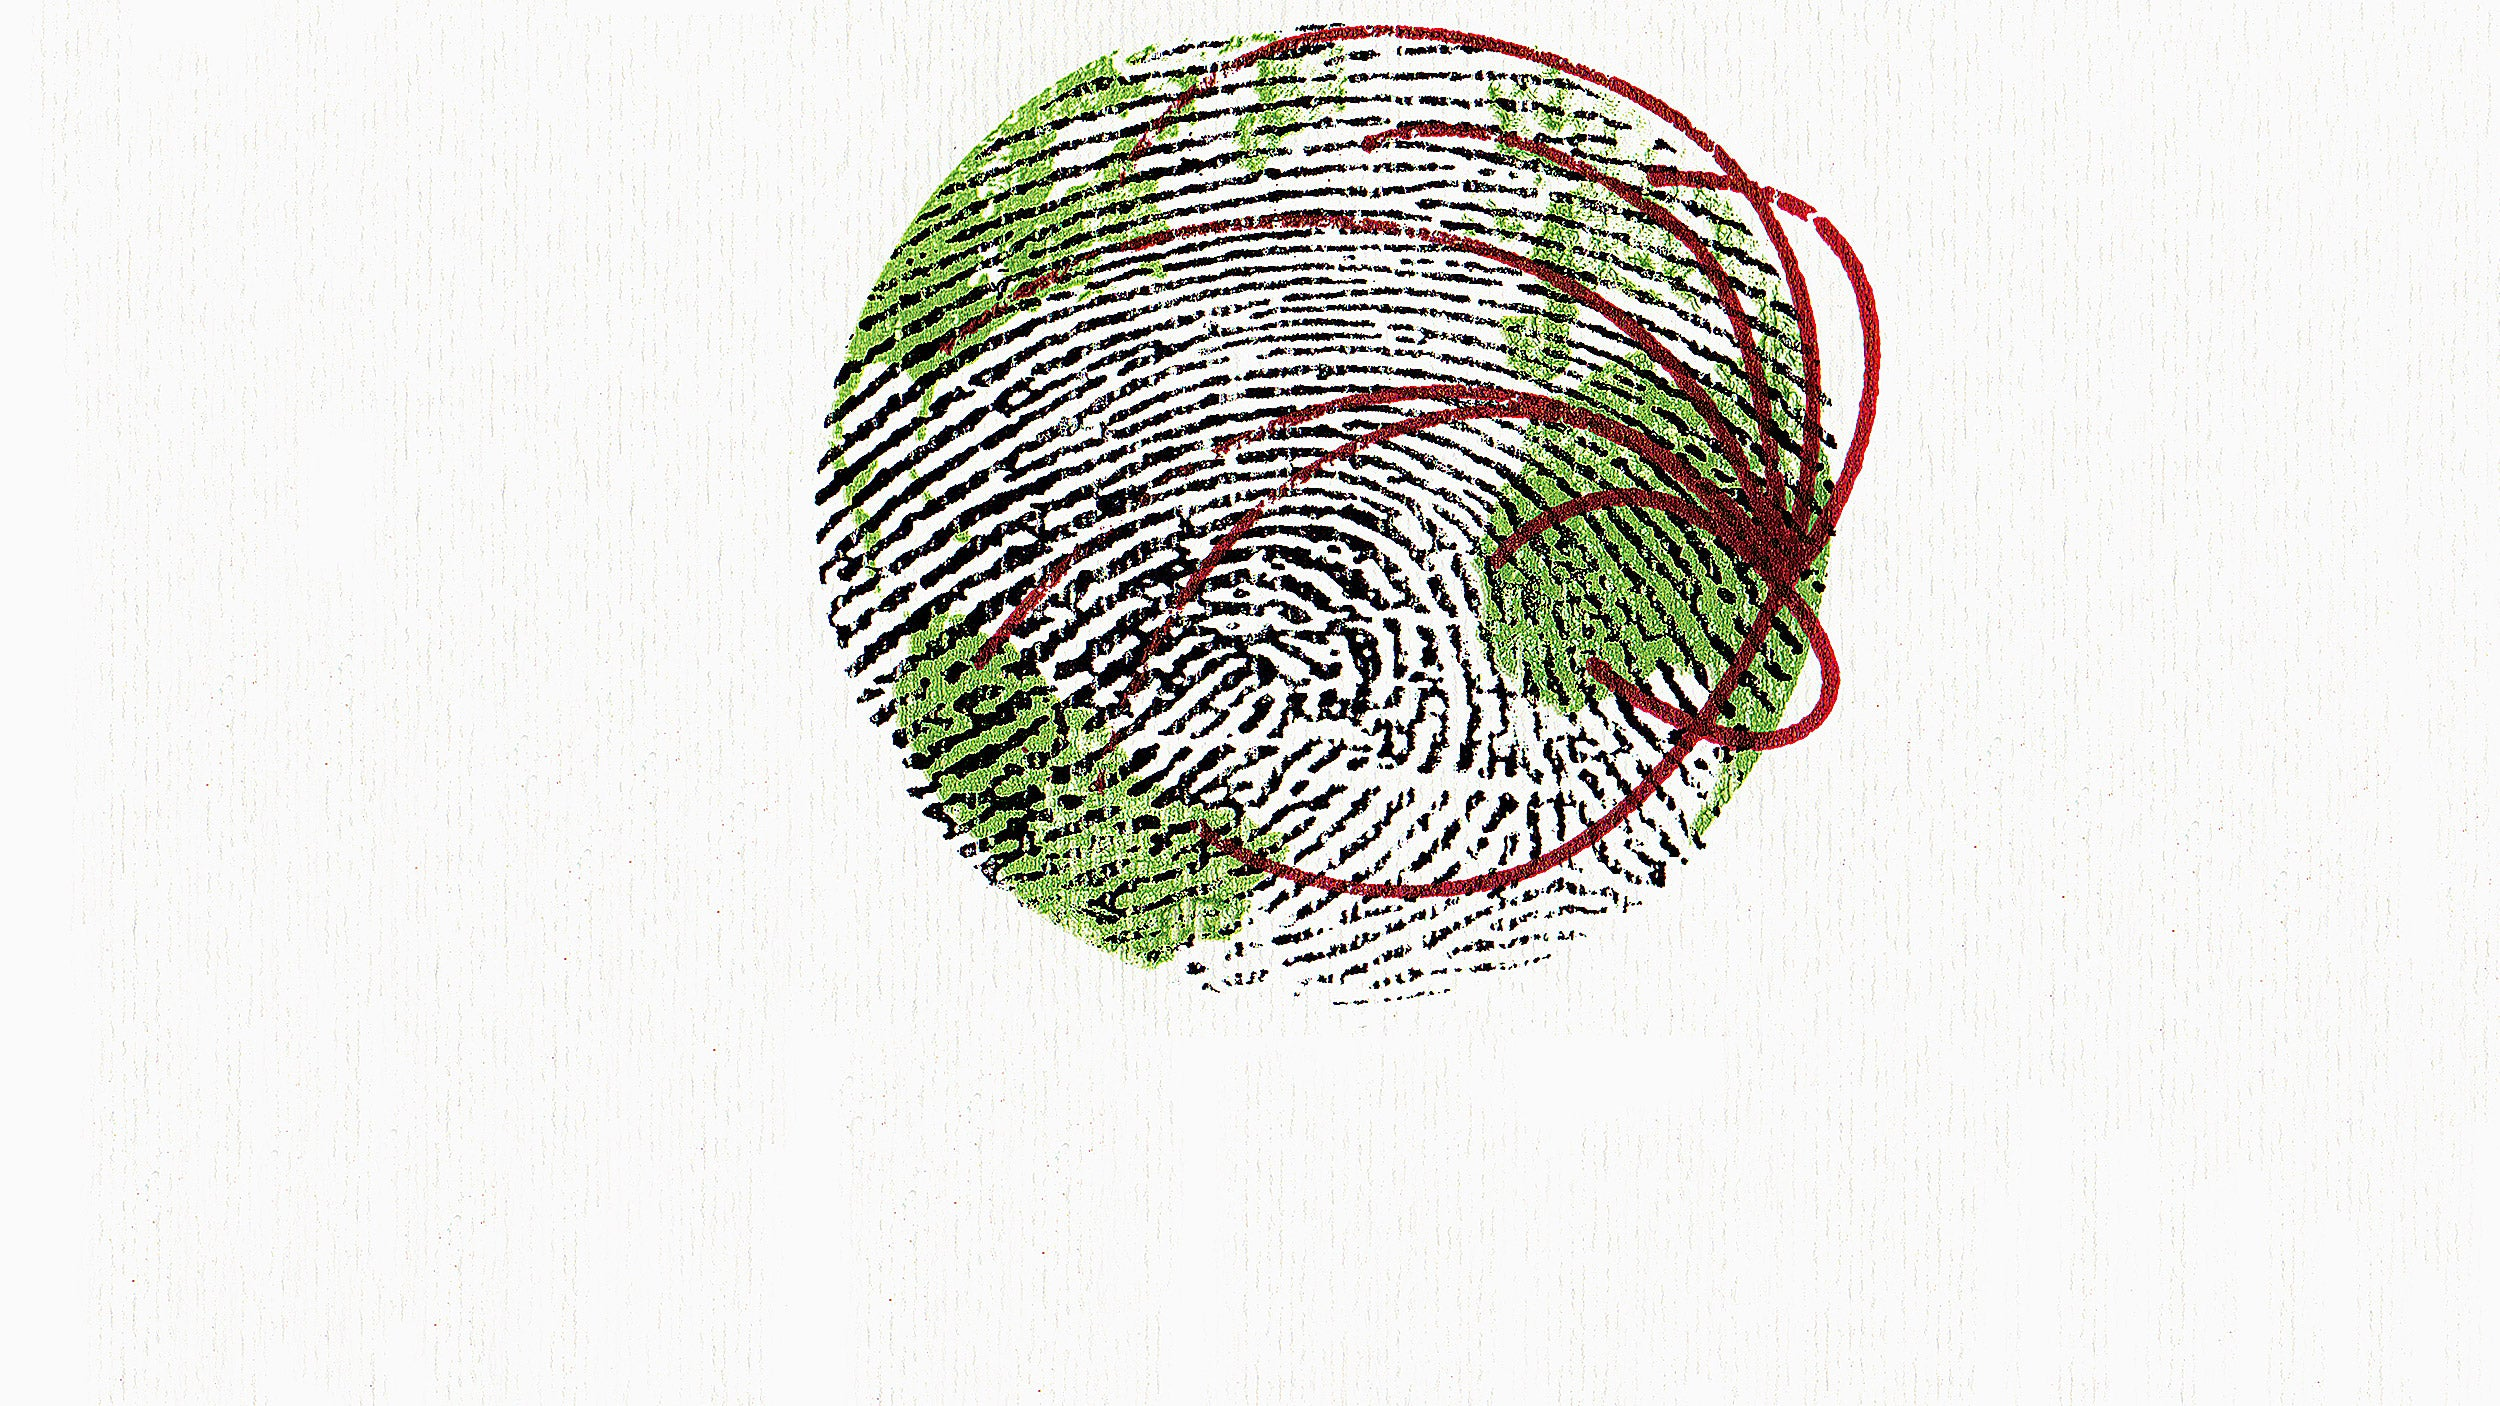 Illustration of globe overlaid with thumbprint and migration lines.